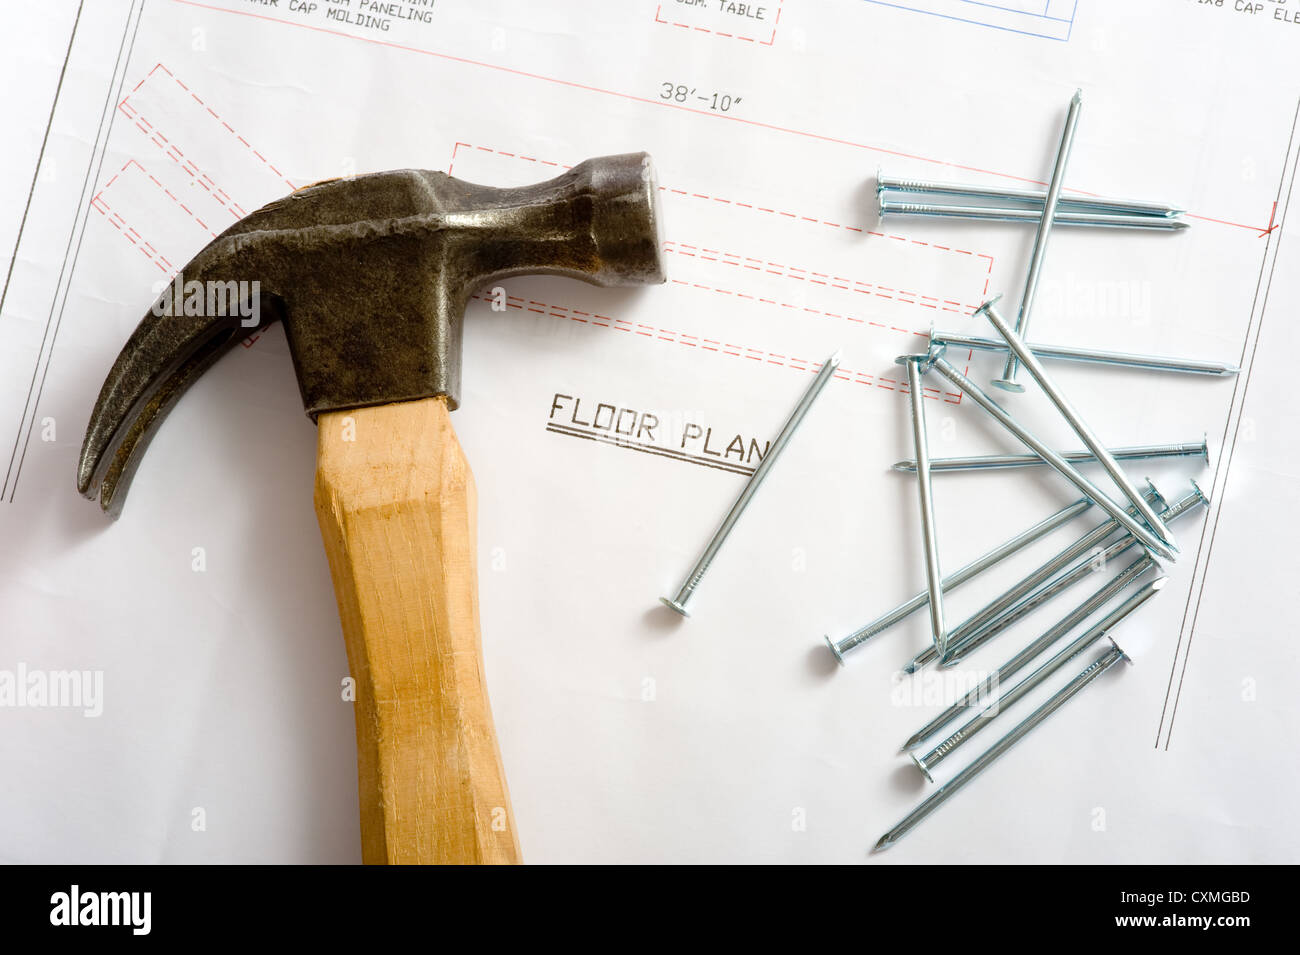 The House Of Hammer a hammer and nails lying on top of a house floor plan or